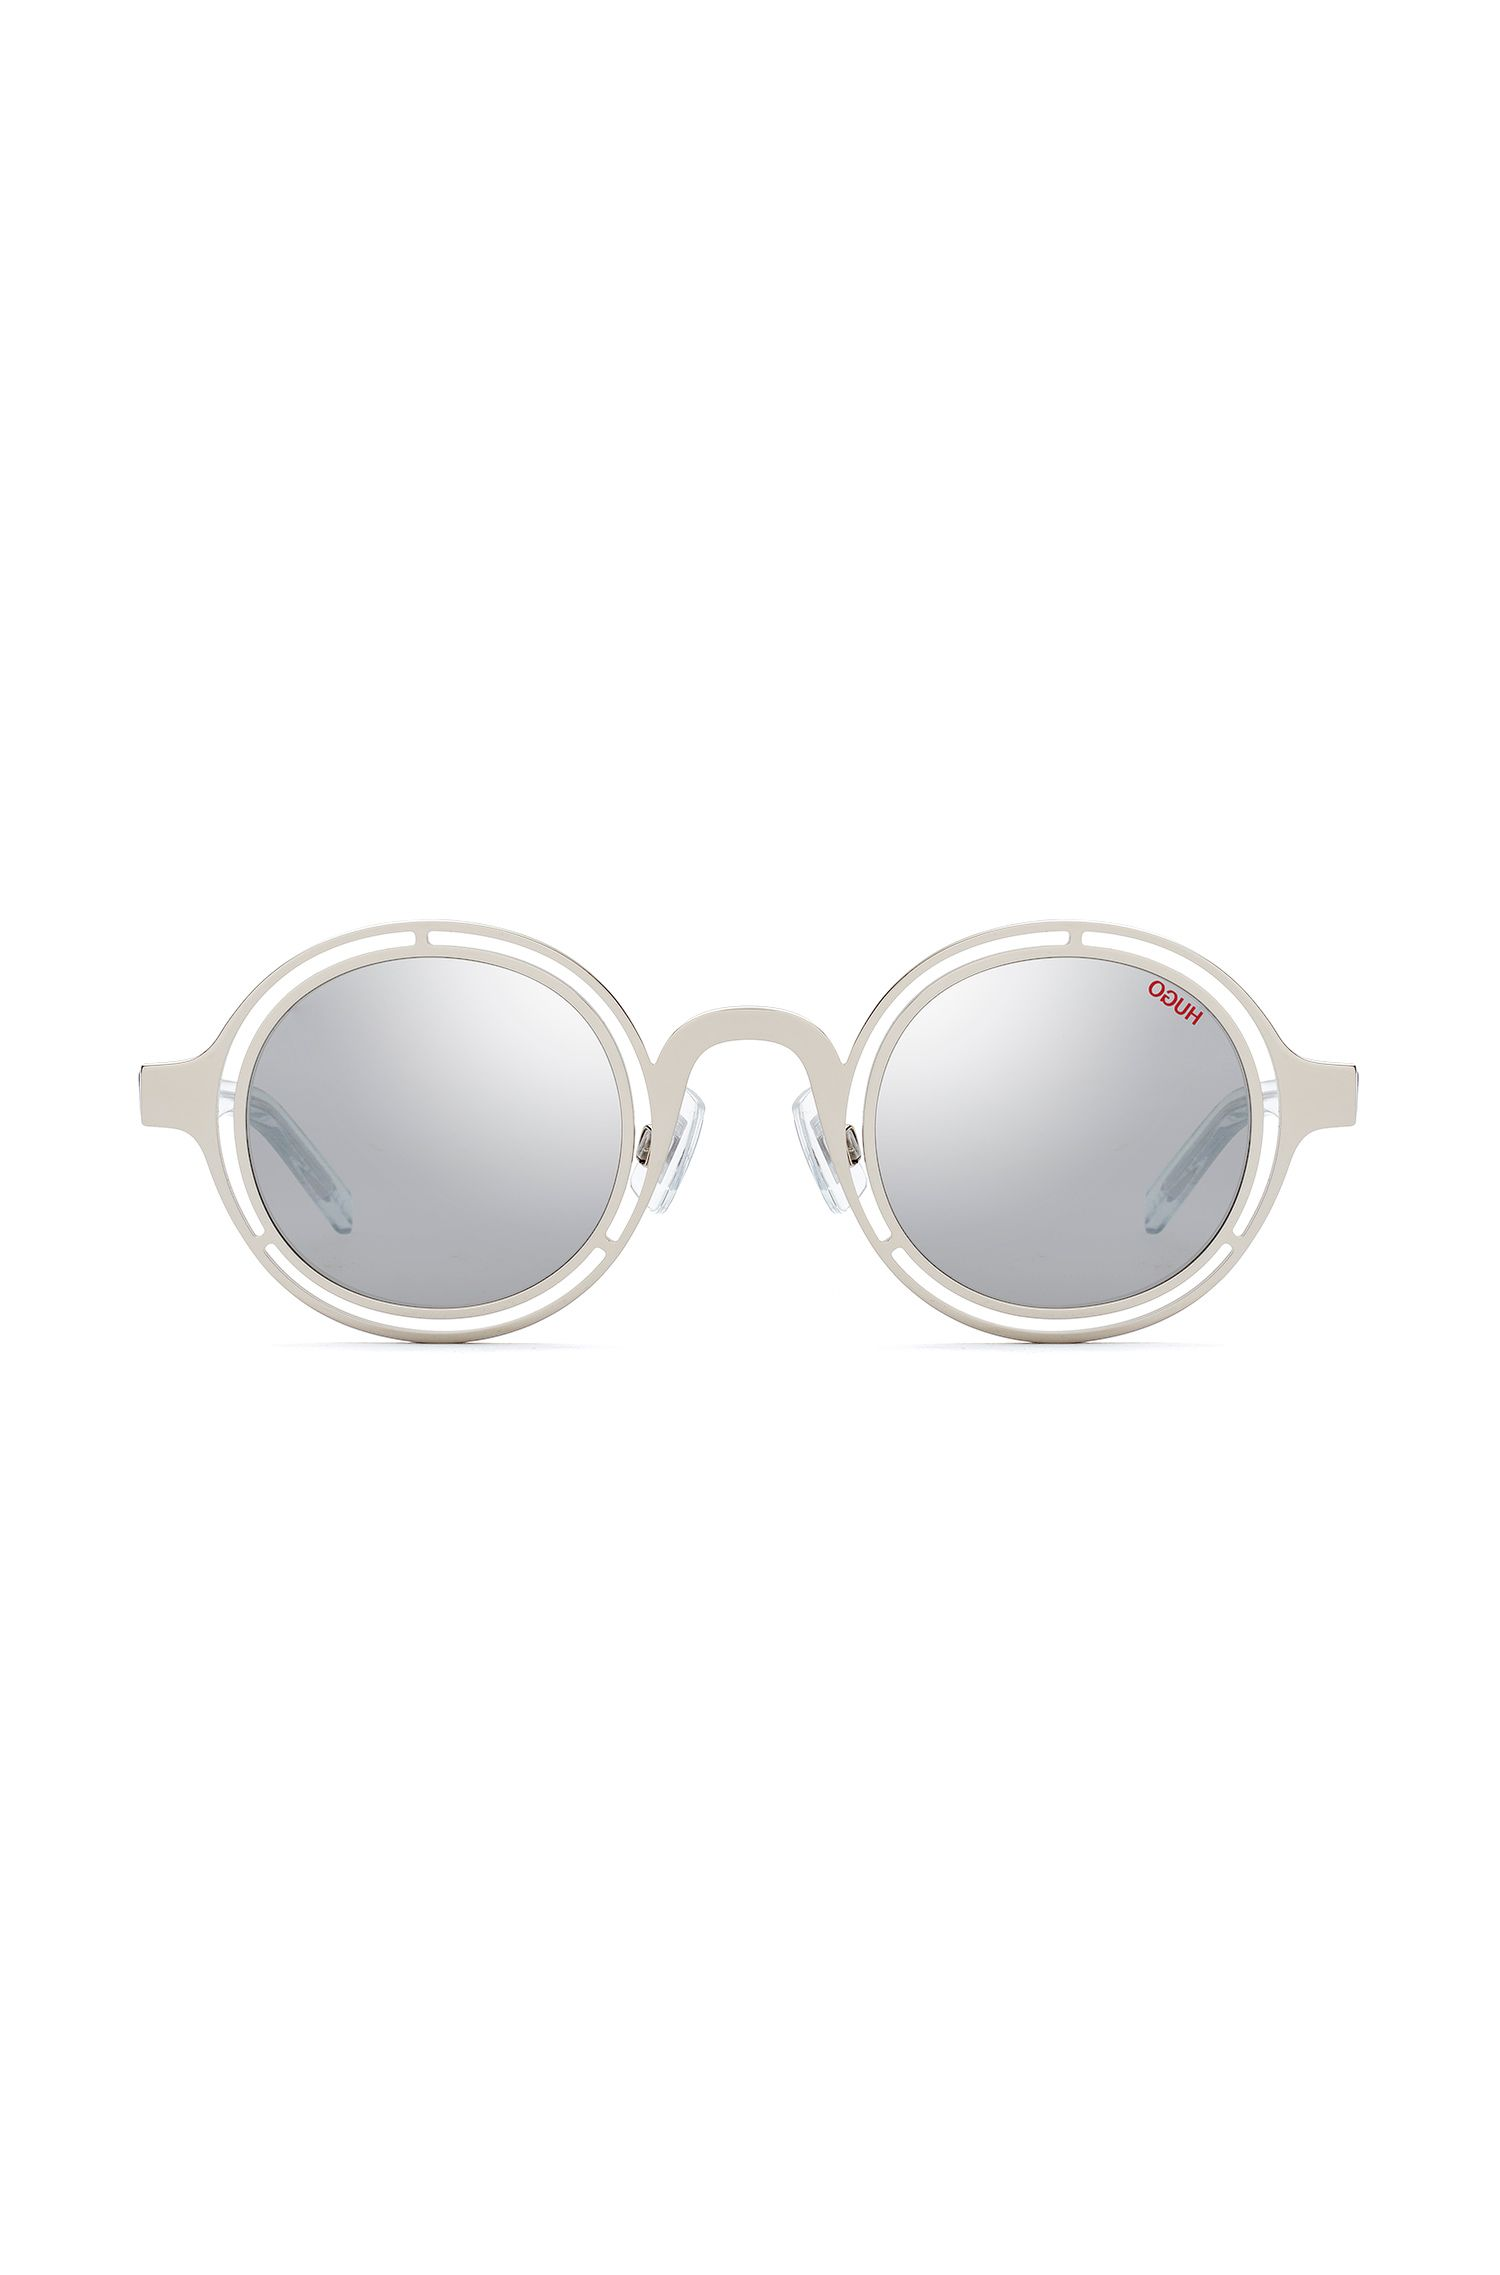 Round sunglasses in palladium steel with transparent temples, Argent